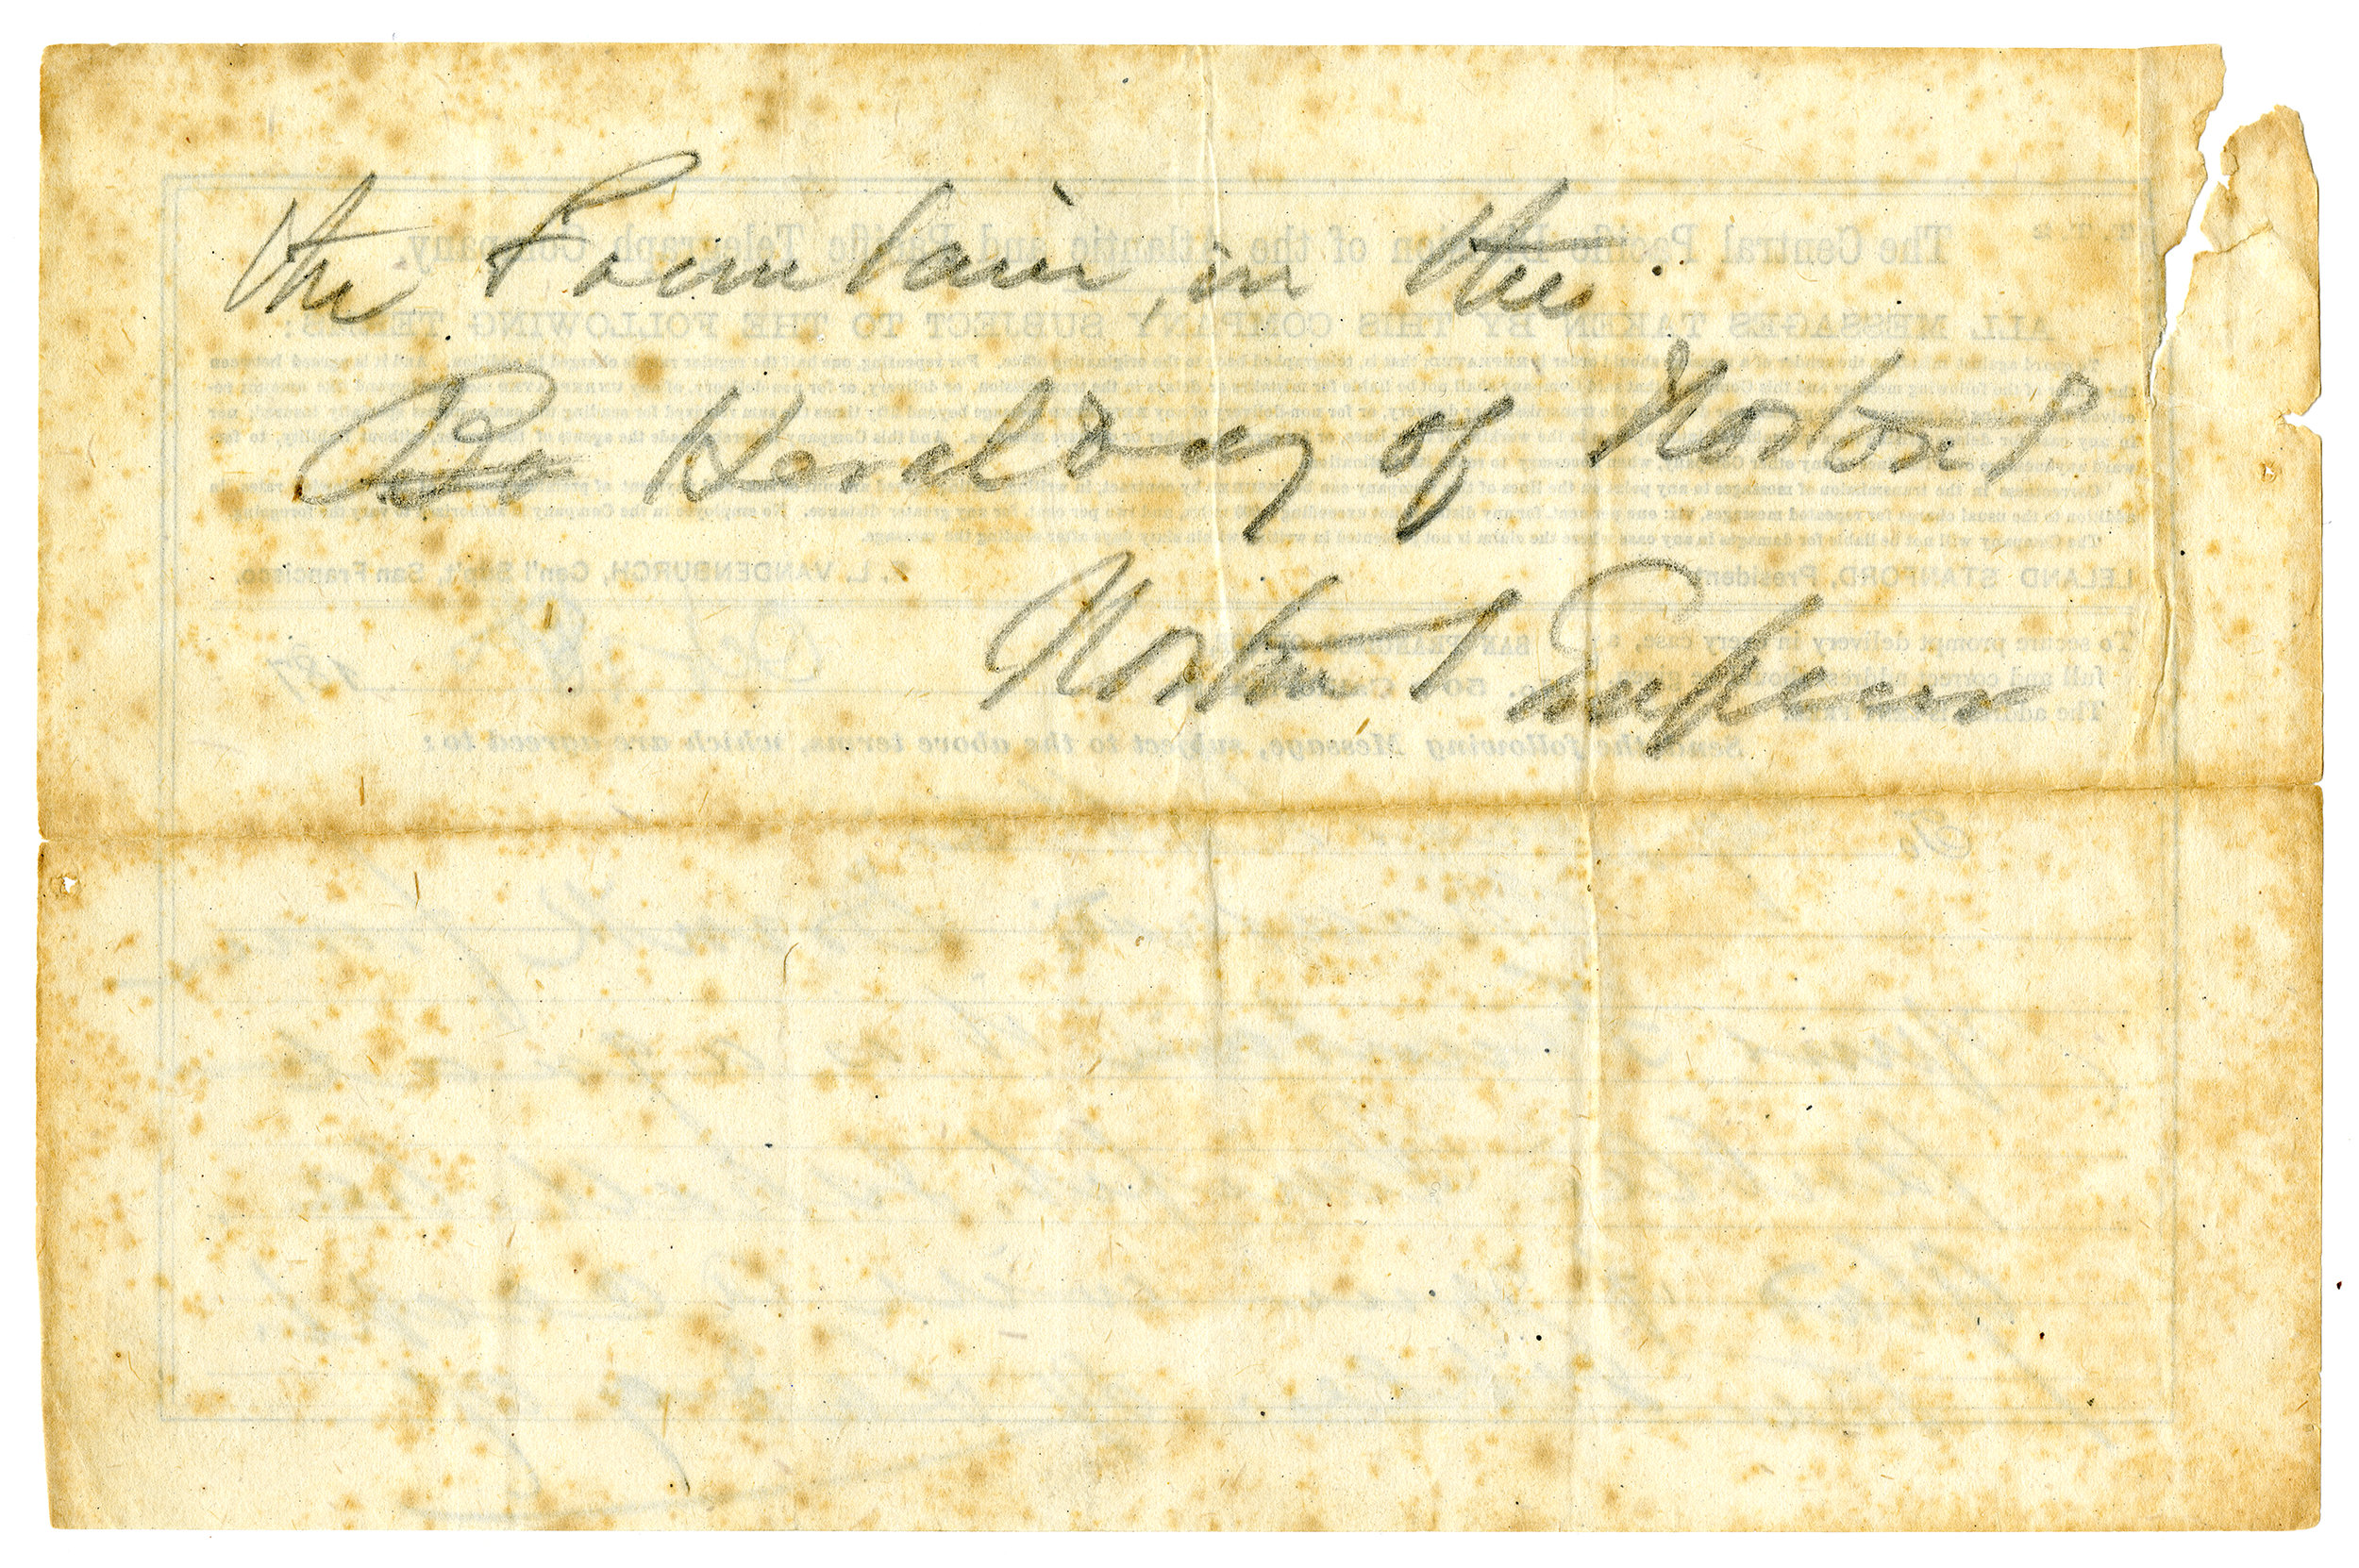 Telegraph to Lotta Crabtree , 18 October, Emperor Norton telegrams and promissory notes, 1872–1879, undated, MS Vault 73, California Historical Society, MS-Vault-73_001a (front)and MS-Vault-73_001b (back).